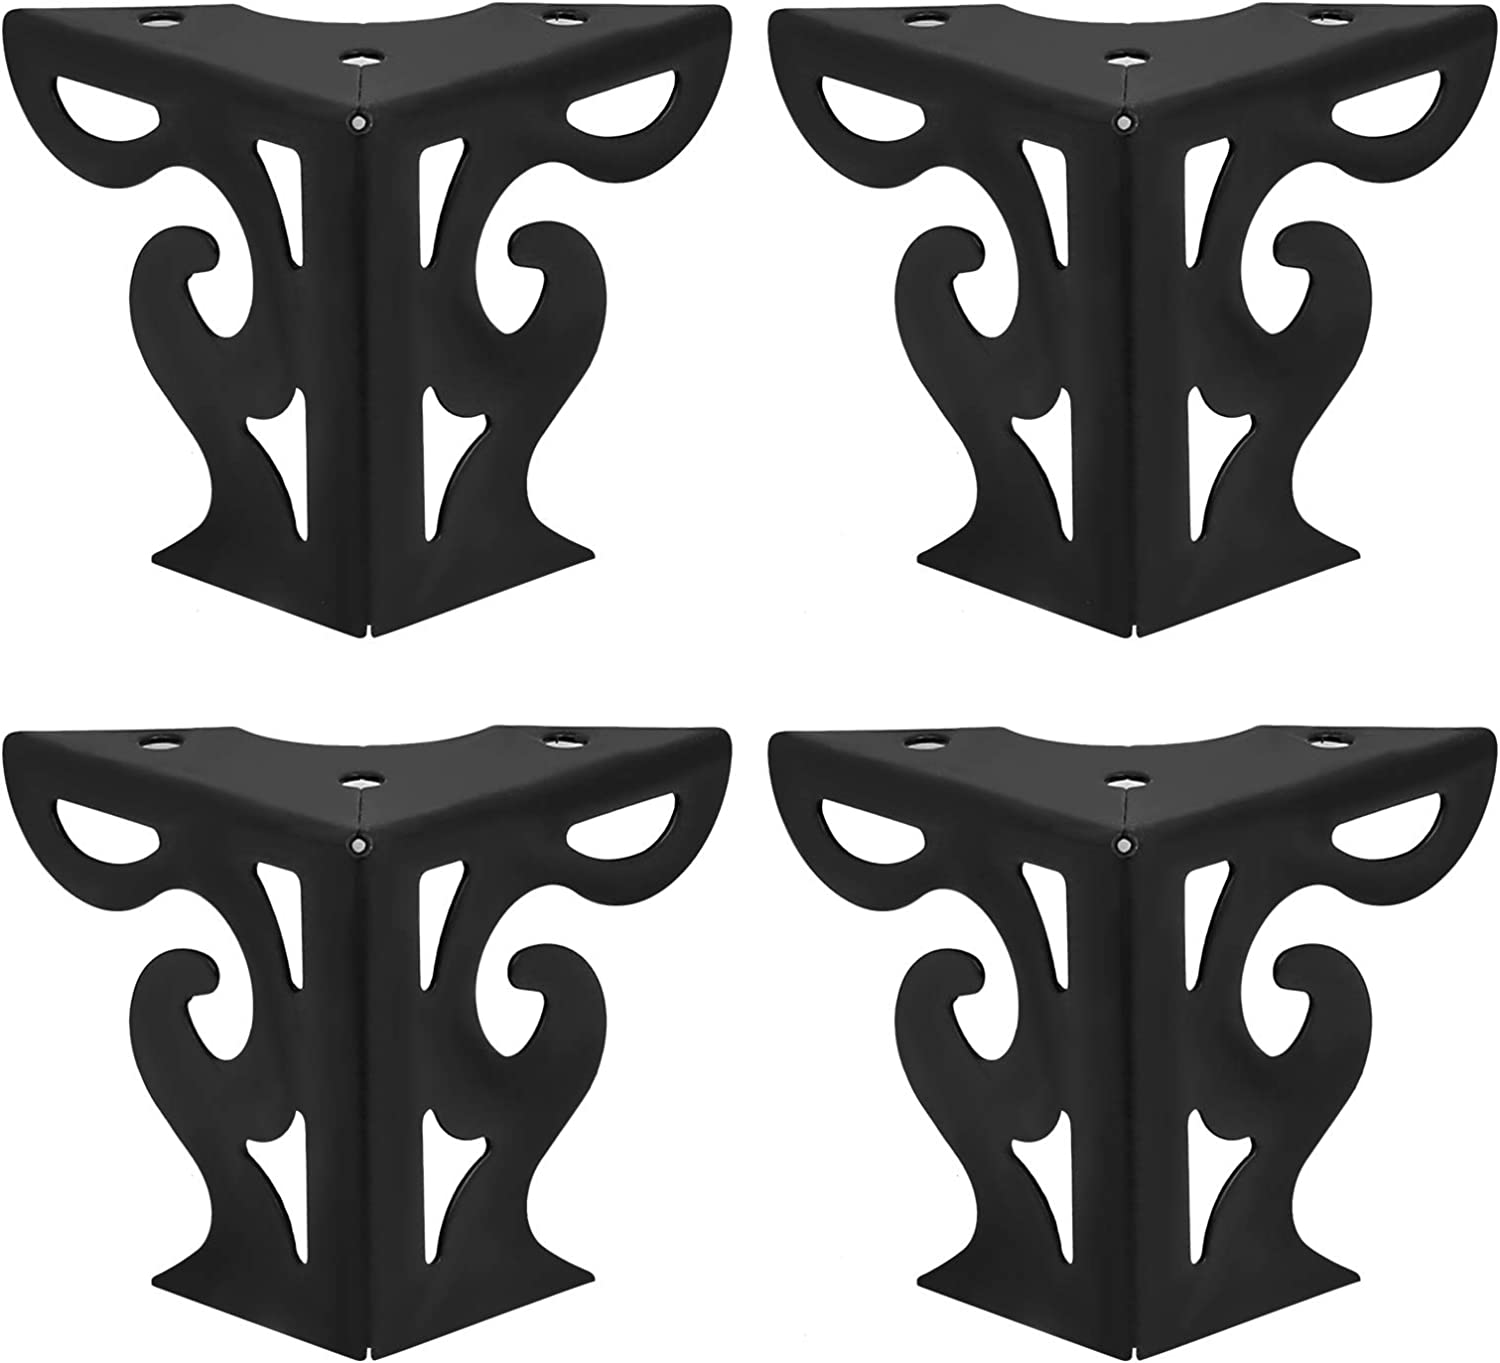 "Seimneire 4Pcs 3"" / 8cm Hollow Out artistic Furniture Sofa Legs, Matte Black Triangle Feet for Sofa Table Cabinet Bookcase Cupboard Couch"